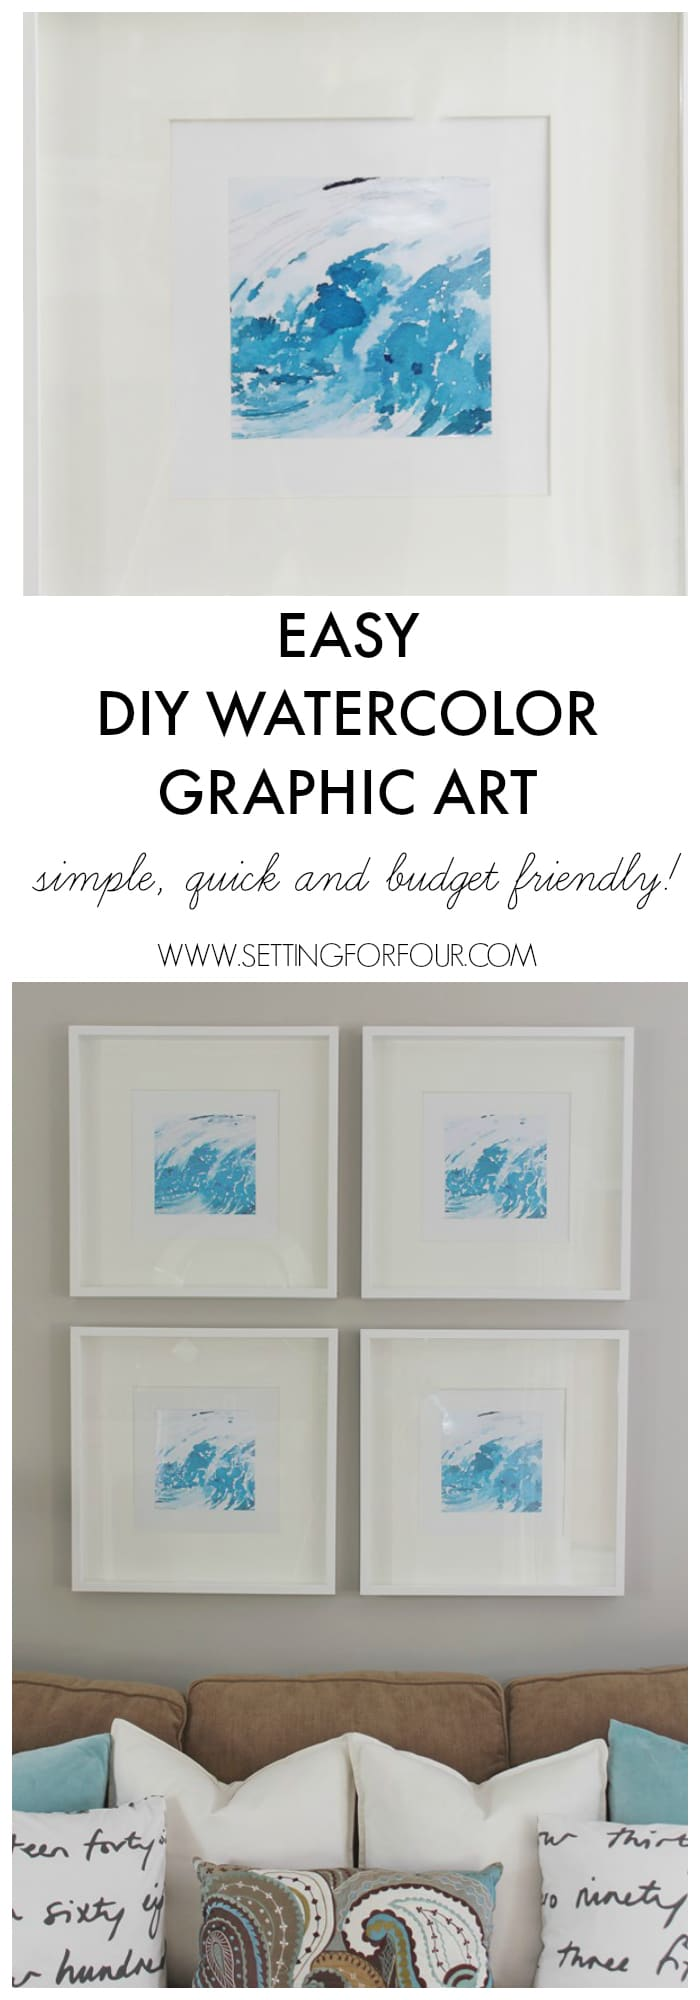 Easy, FREE DIY Watercolor Graphic Art - just print, frame and hang! Such a simple, quick and budget friendly way to decorate your walls and create an instant gallery wall! www.settingforfour.com